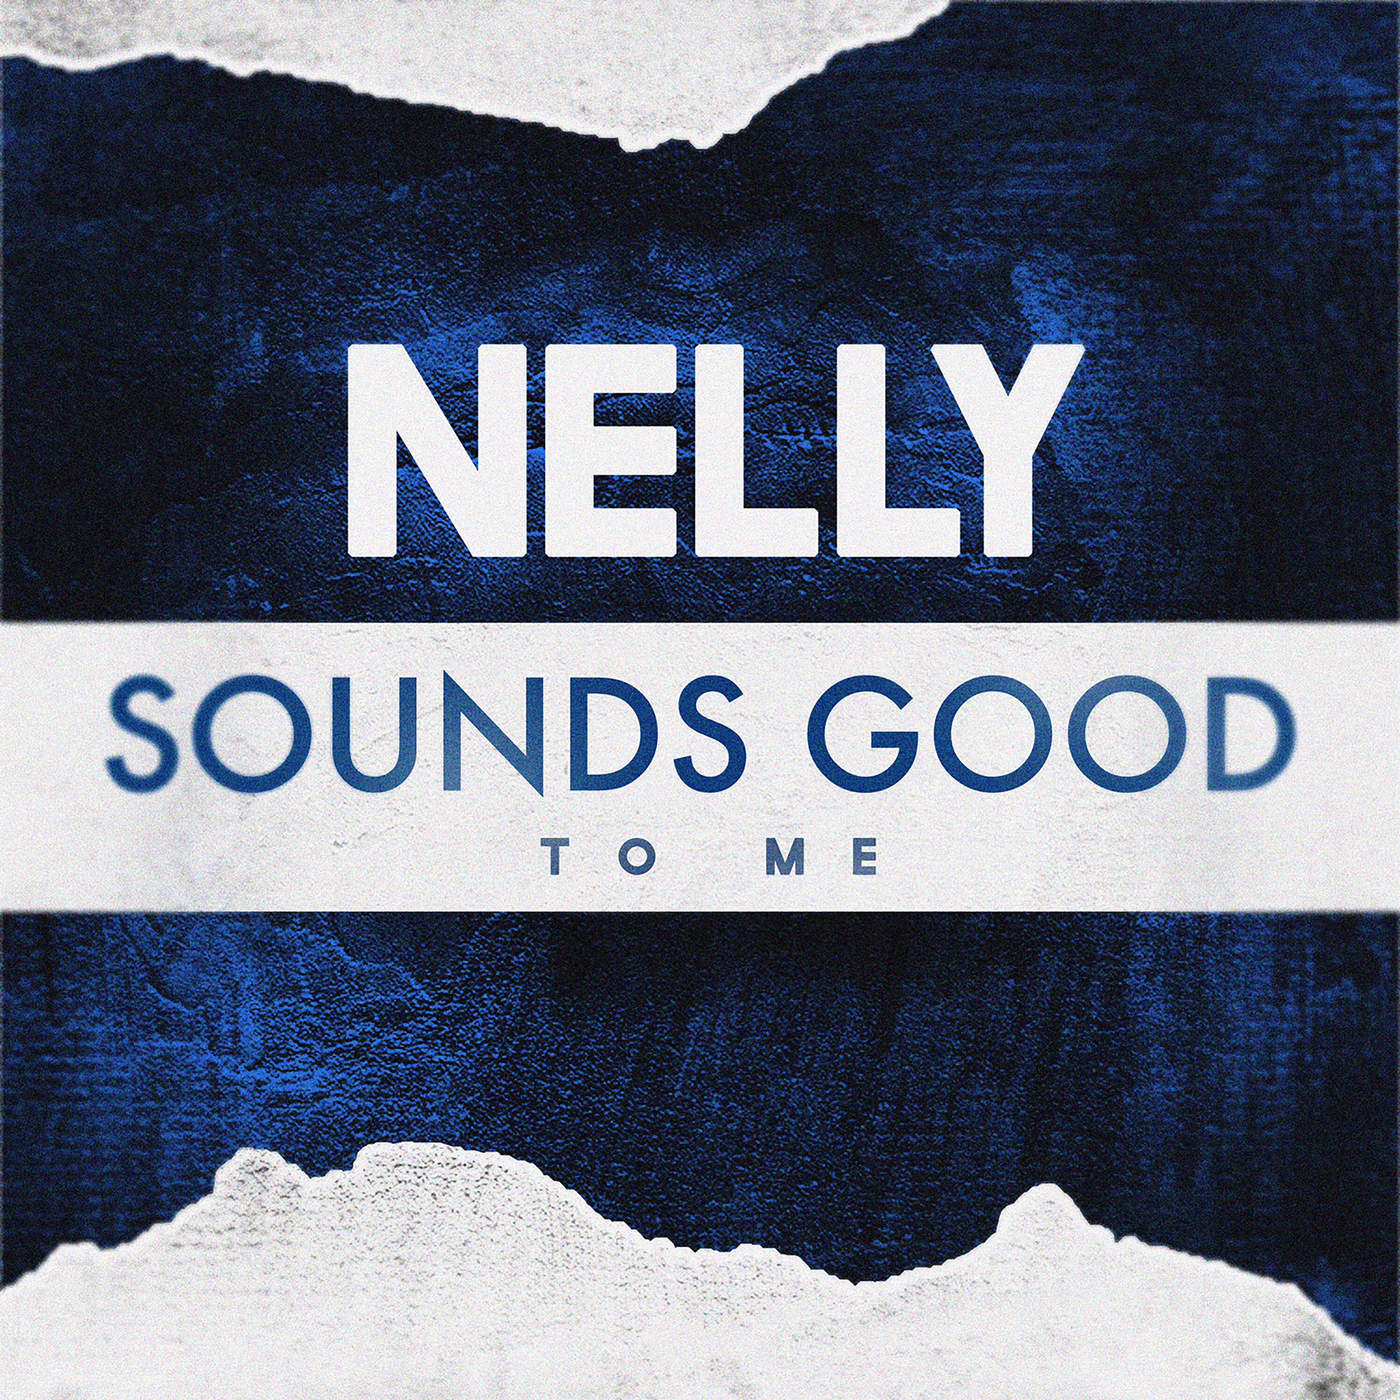 Nelly - Sounds Good to Me - Single Cover